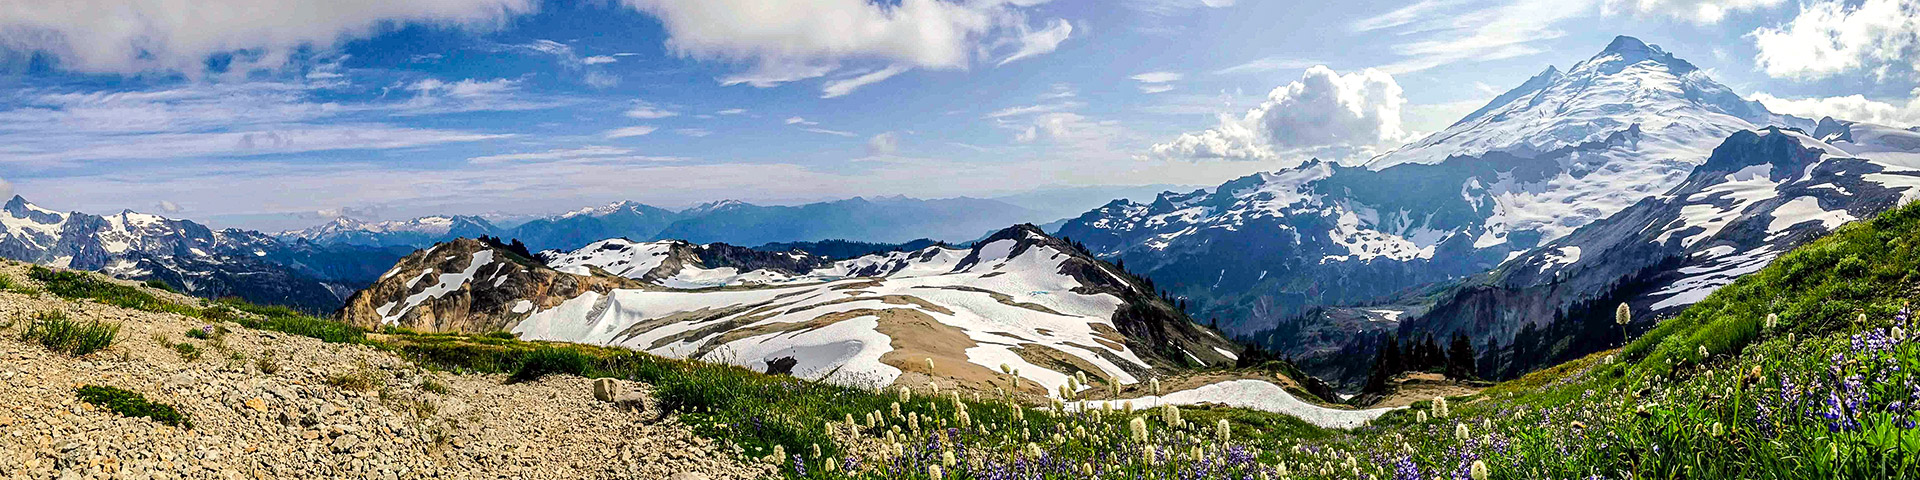 Ptarmigan Ridge hike in Mt. Baker-Snoqualmie National Forest